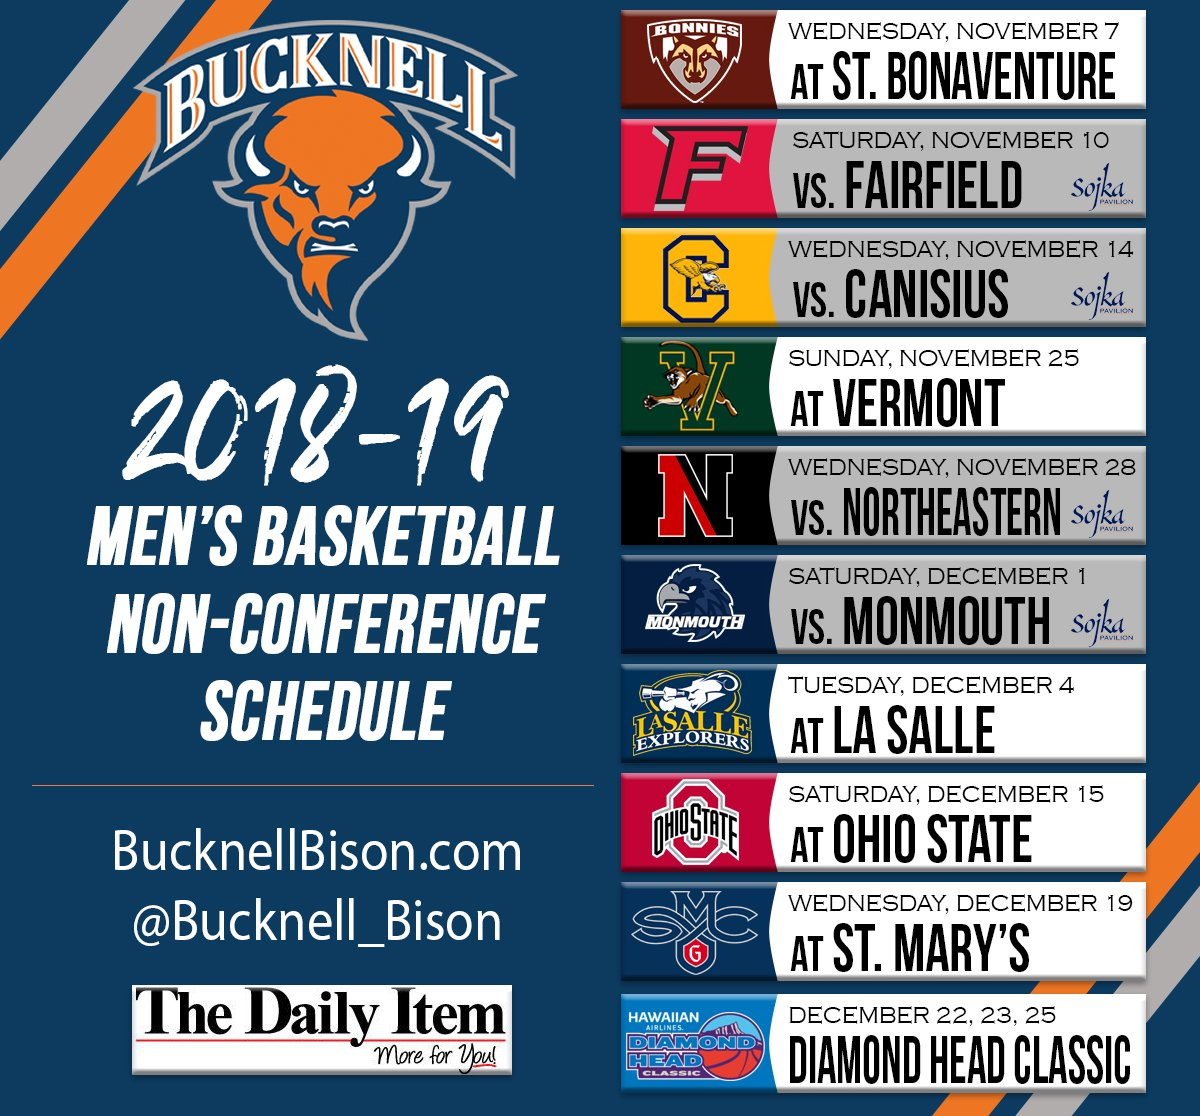 HERE IT IS! Announcing our 2018 non-conference schedule! #rayBucknell